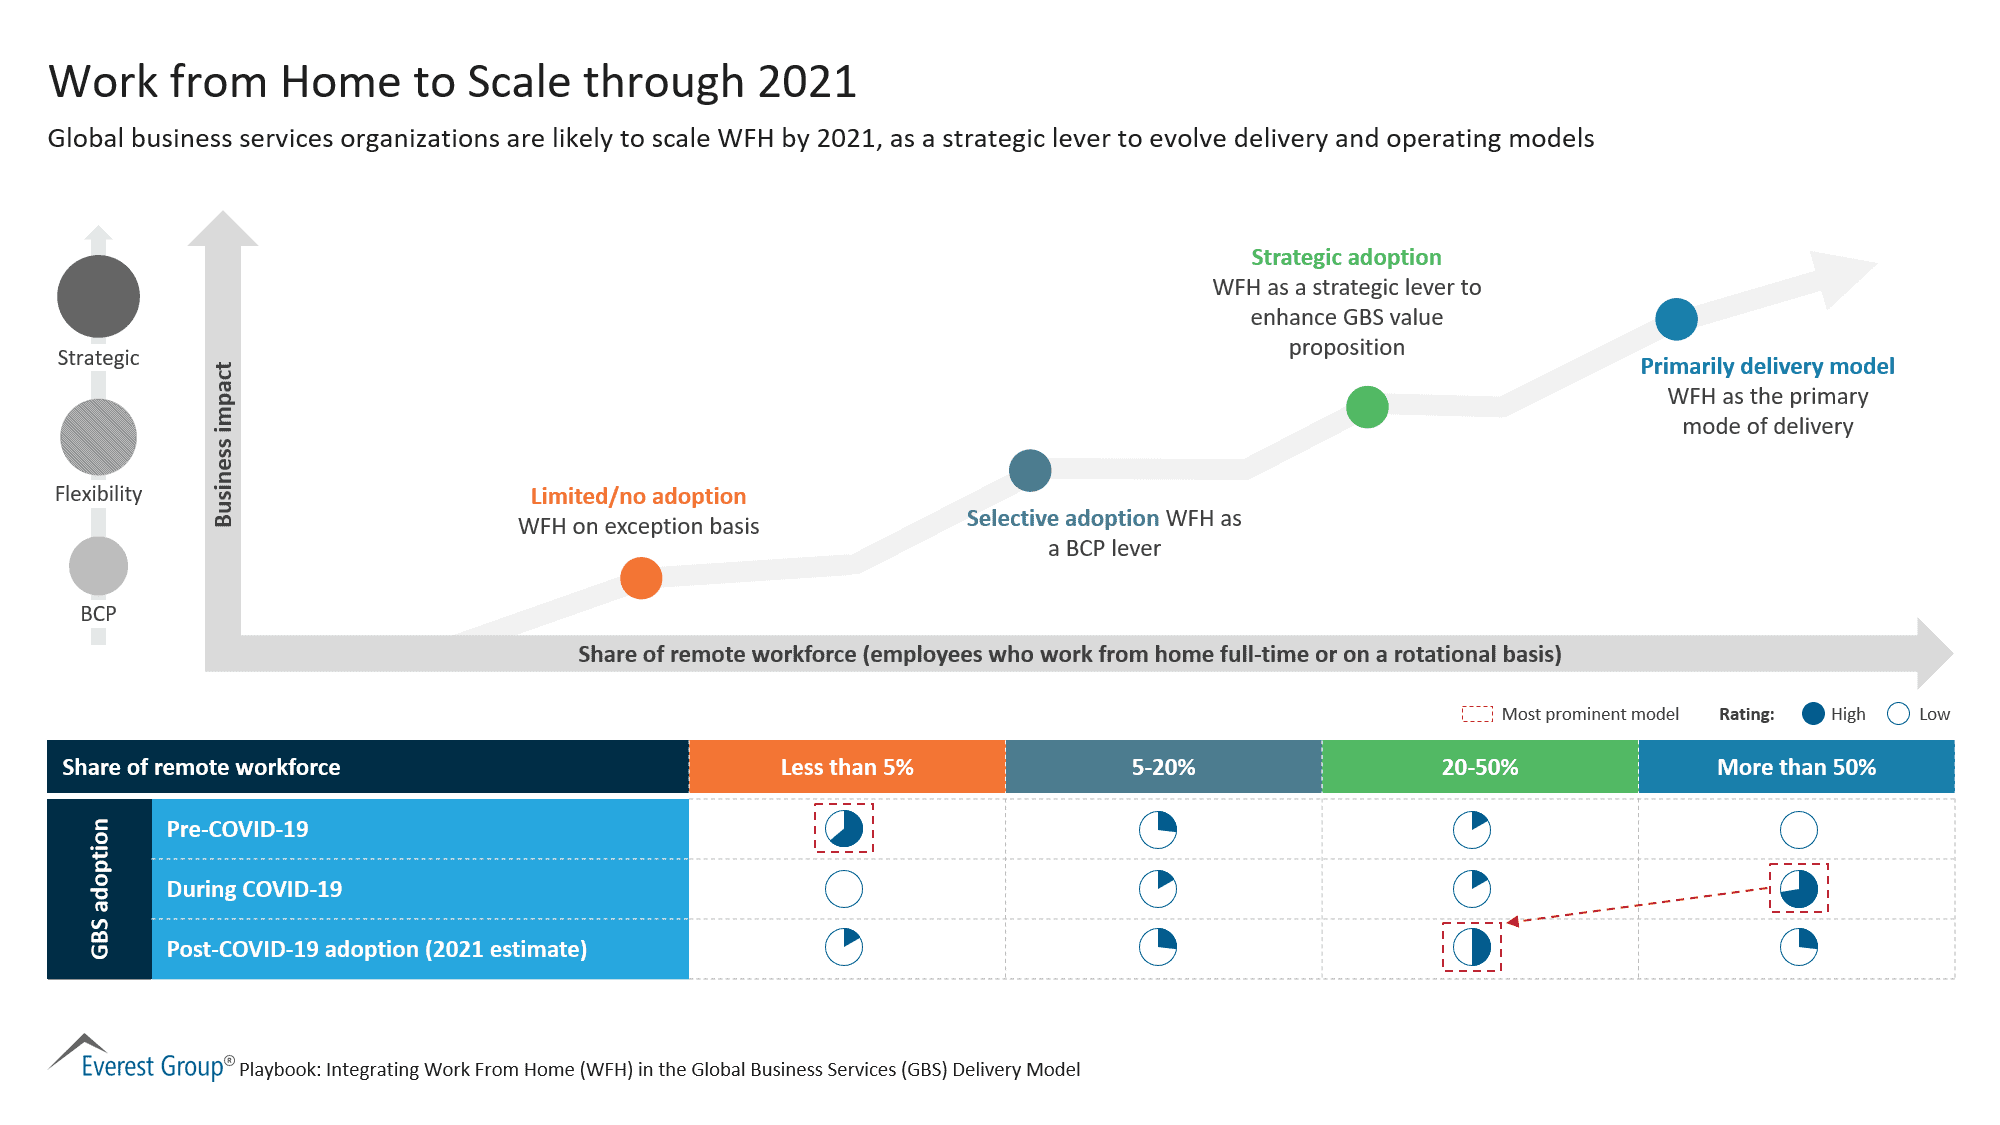 Work from Home to Scale through 2021